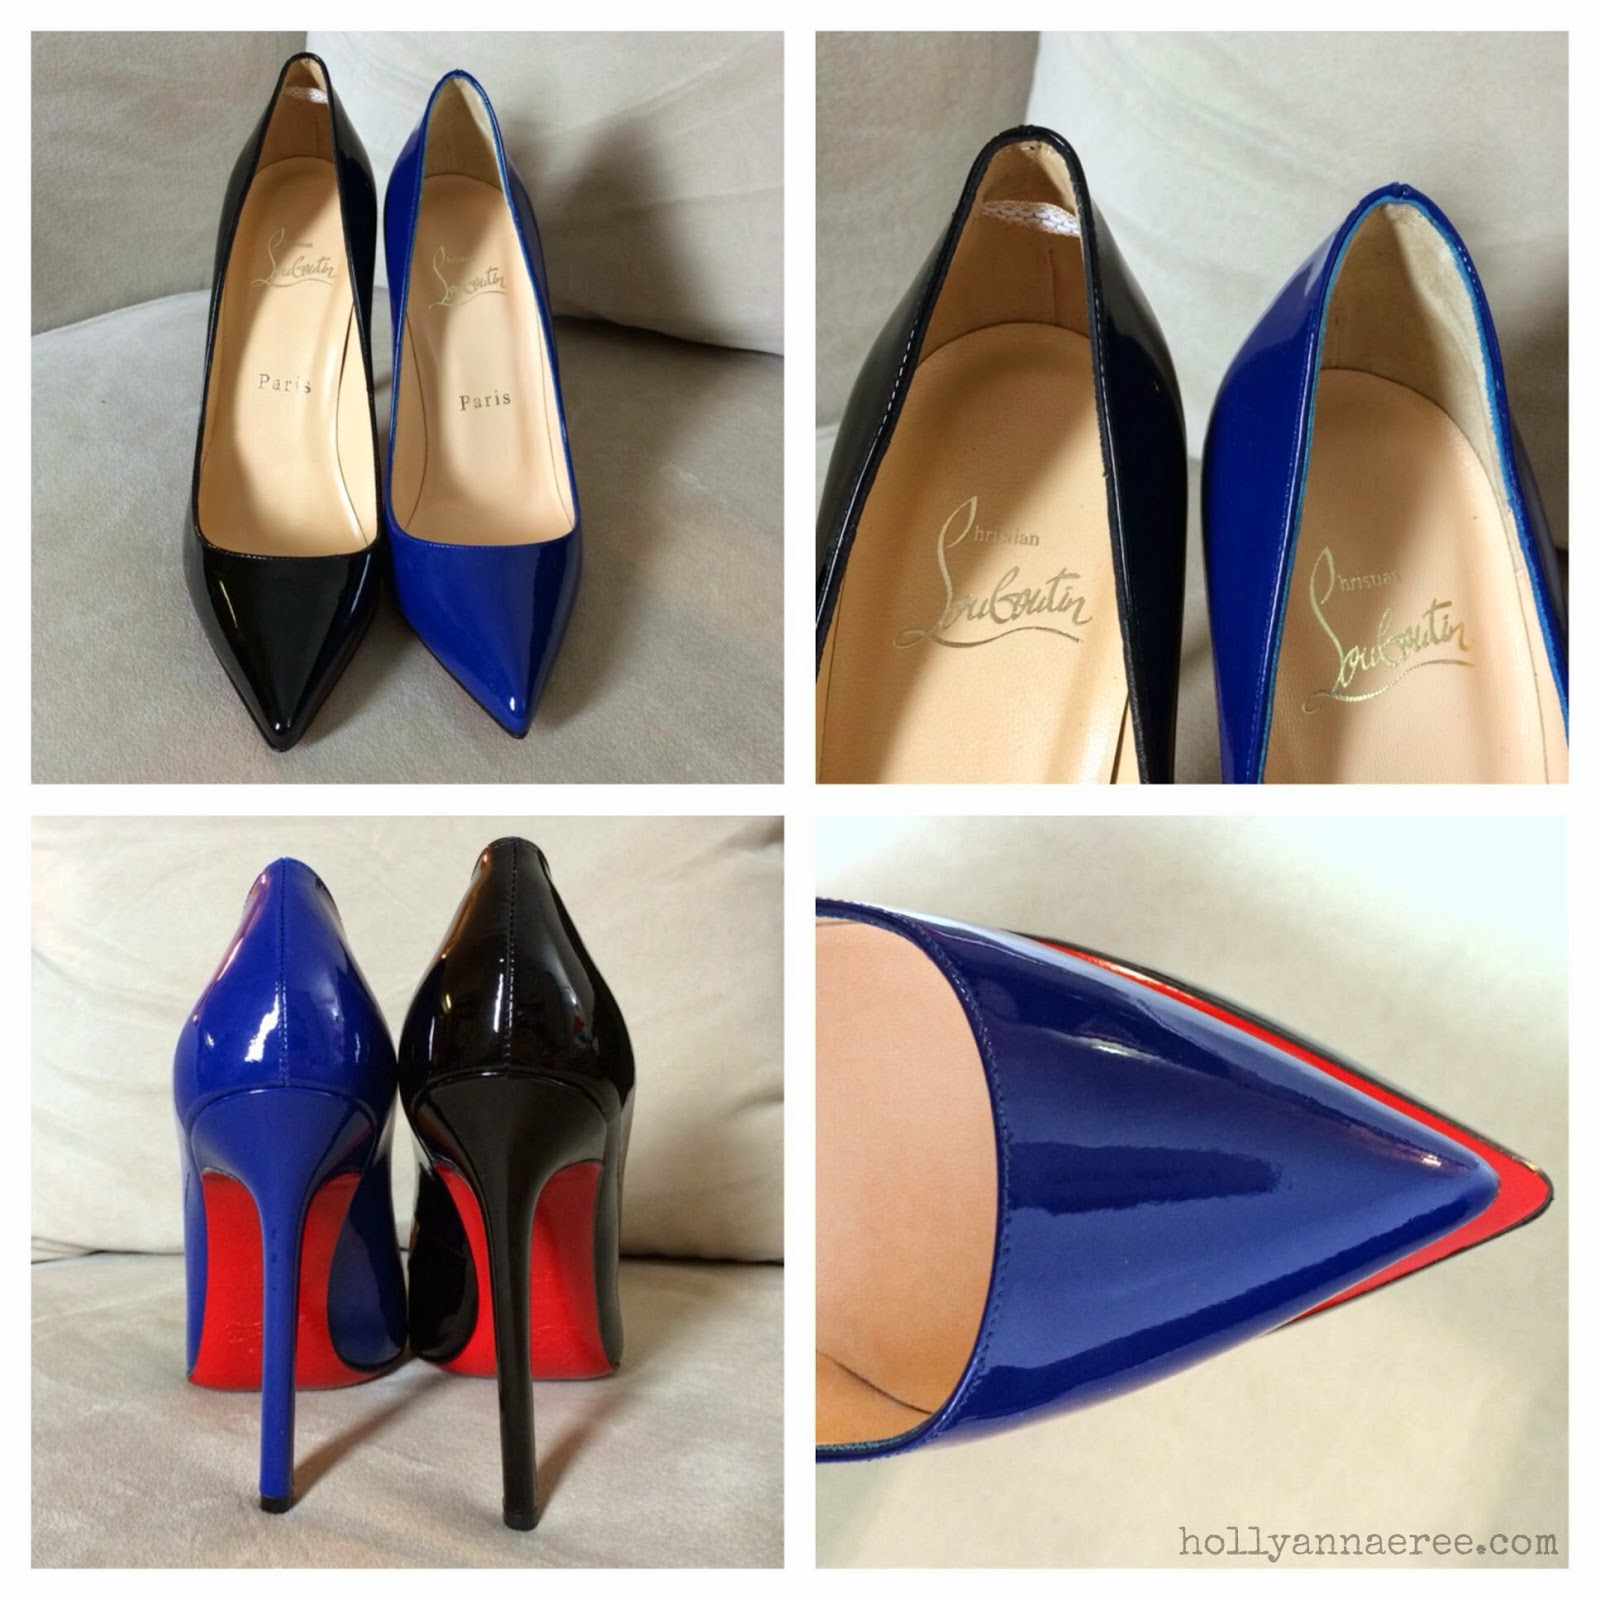 95220ee5113b Changes to the Christian Louboutin Pigalle 120mm - WHYYY ! ! Comparison  Photos (pic heavy)